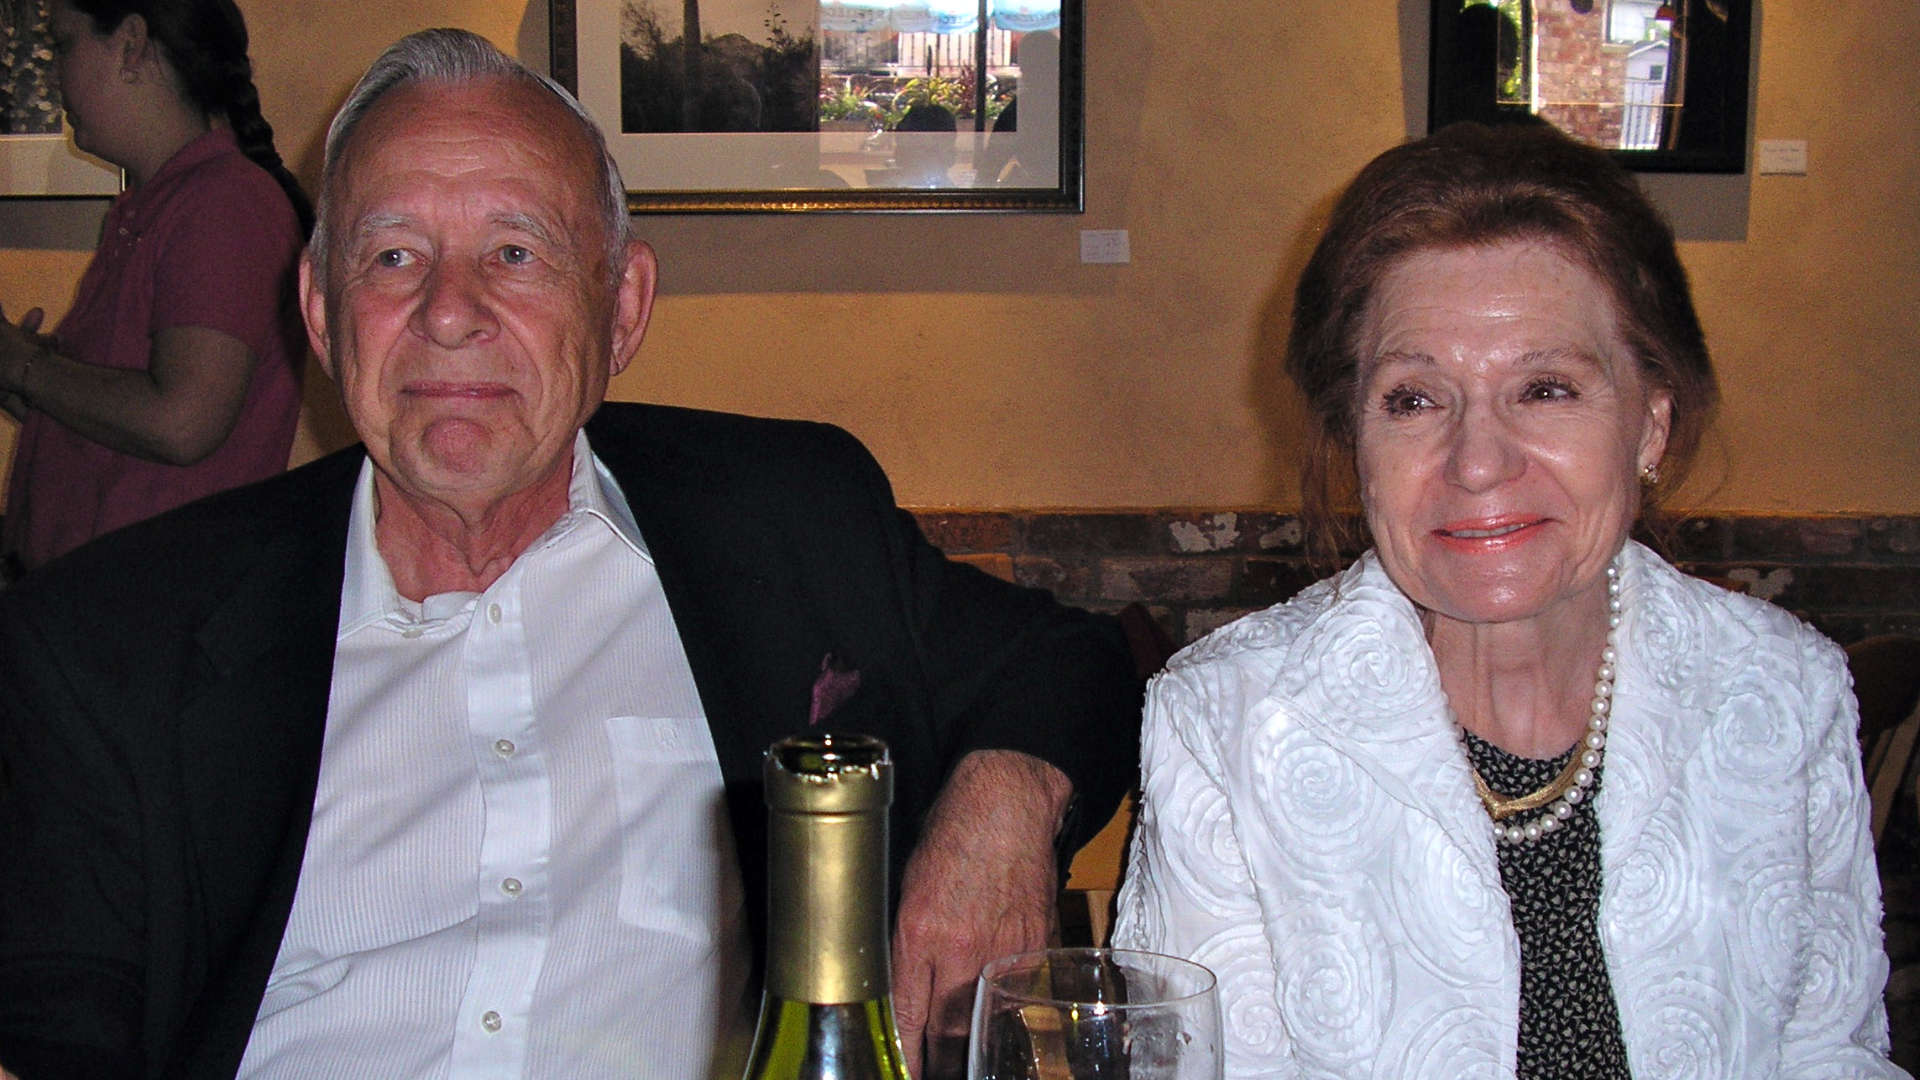 One of my favorite old photos of my grandparents (2006), celebrating my undergrad graduation in Wise, VA. Look at those proud, constrained smiles!